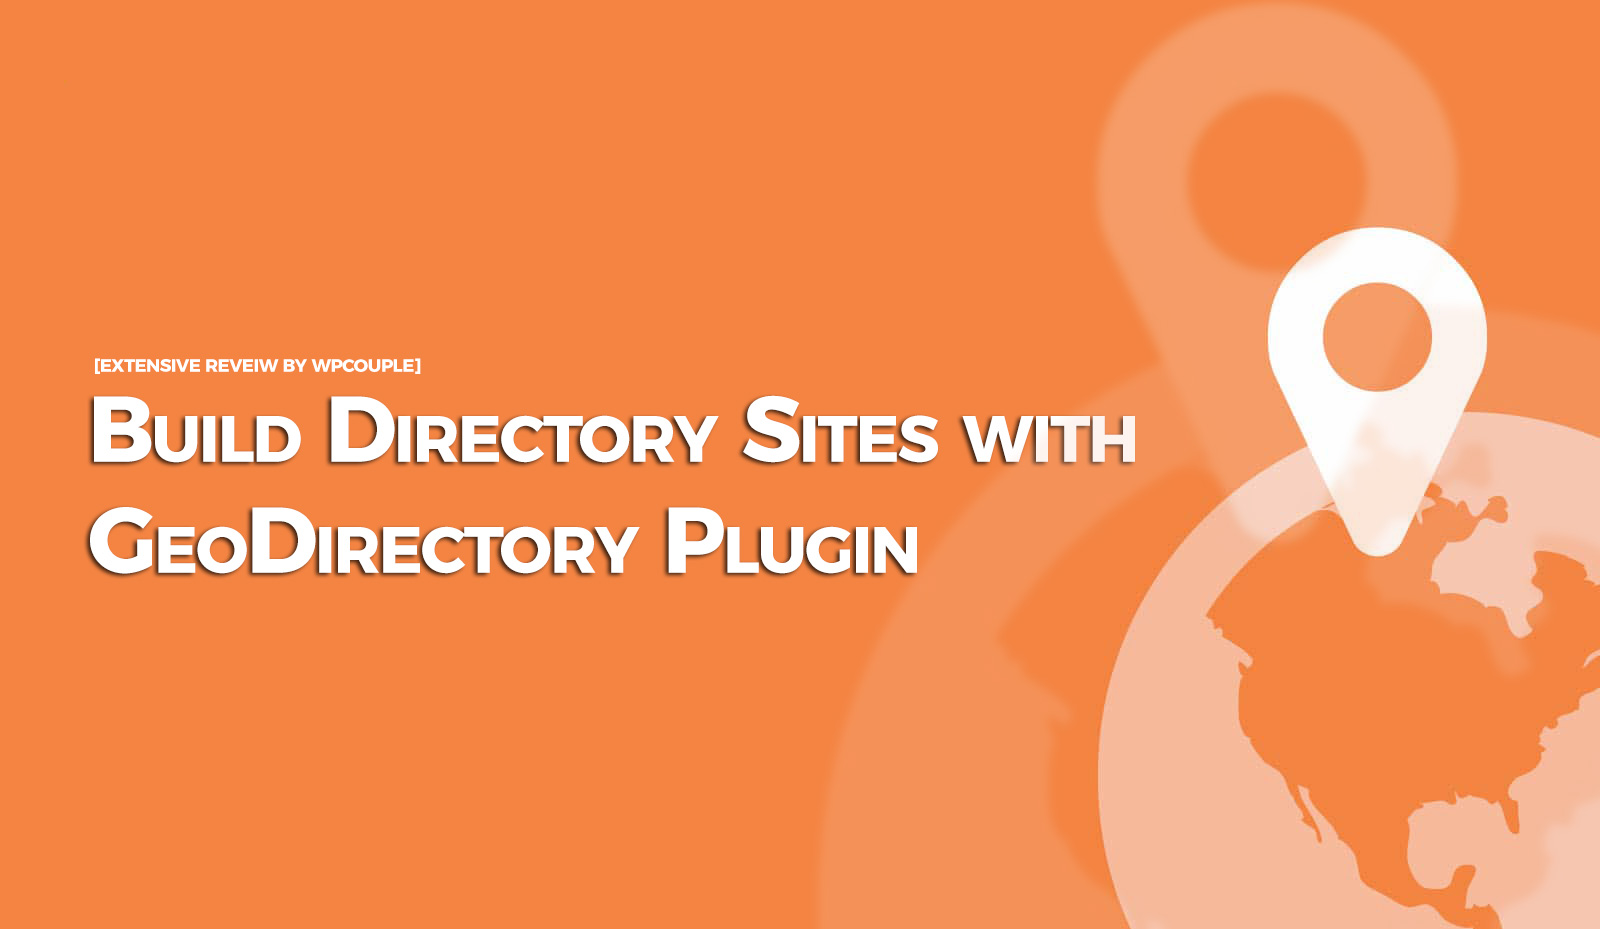 Build Your Next WordPress Directory Site with GeoDirectory Plugin 1 geodirectory plugin Extensive Reviews